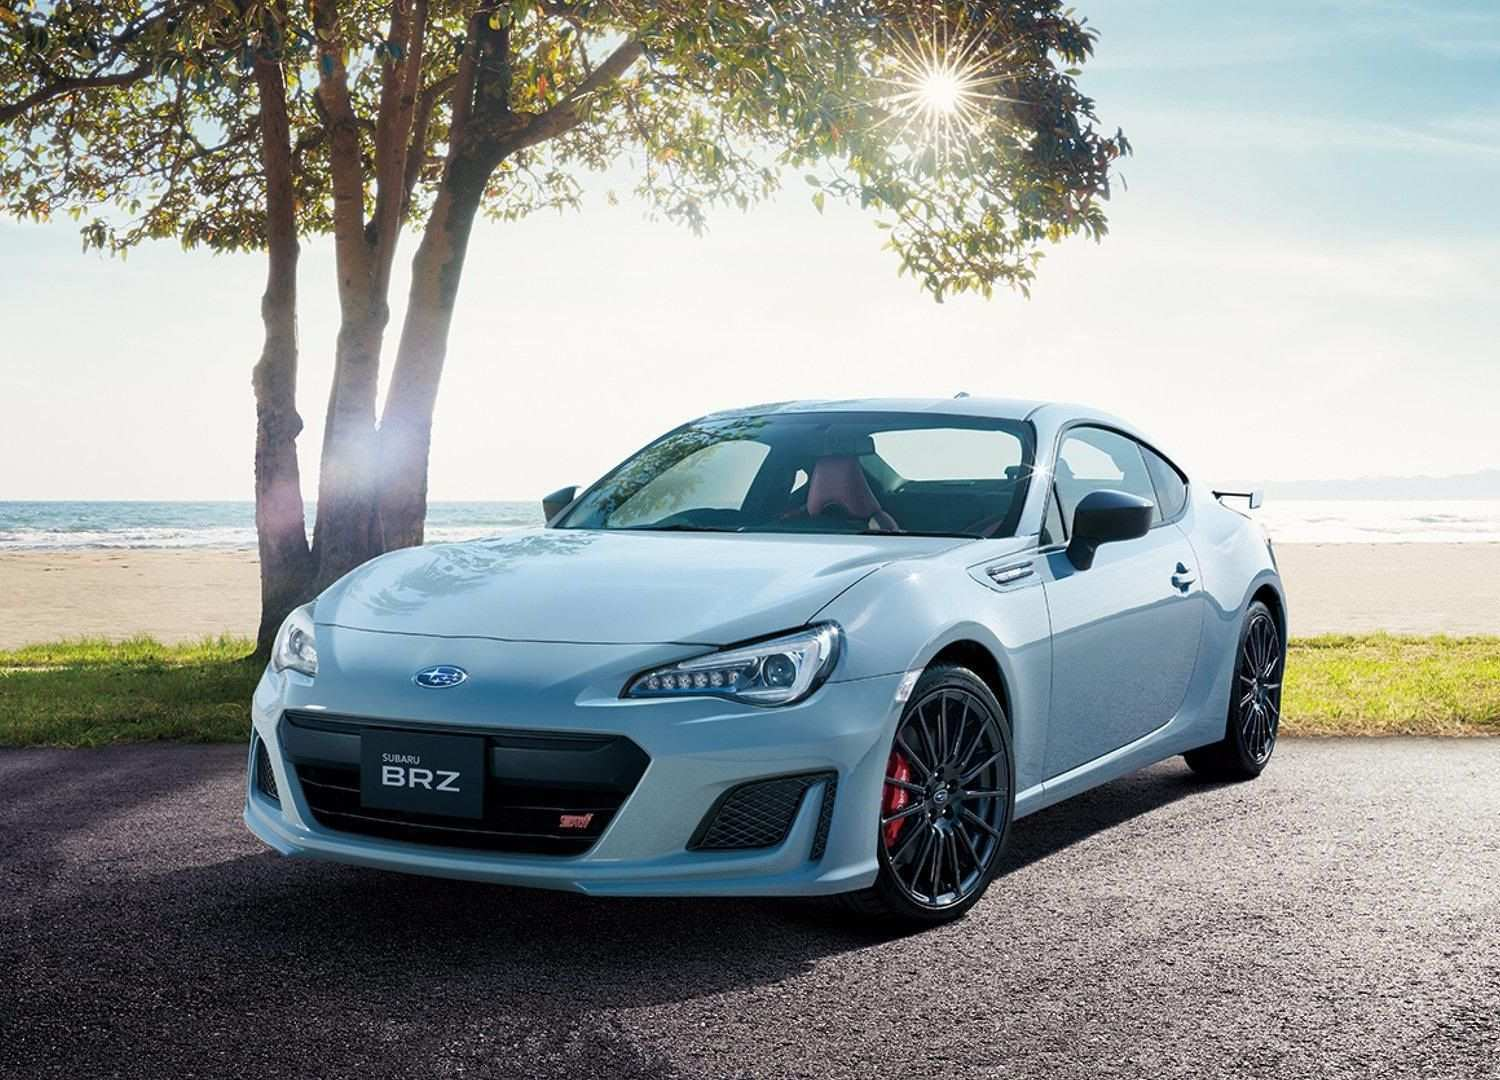 24 All New Subaru Brz Turbo 2020 Performance